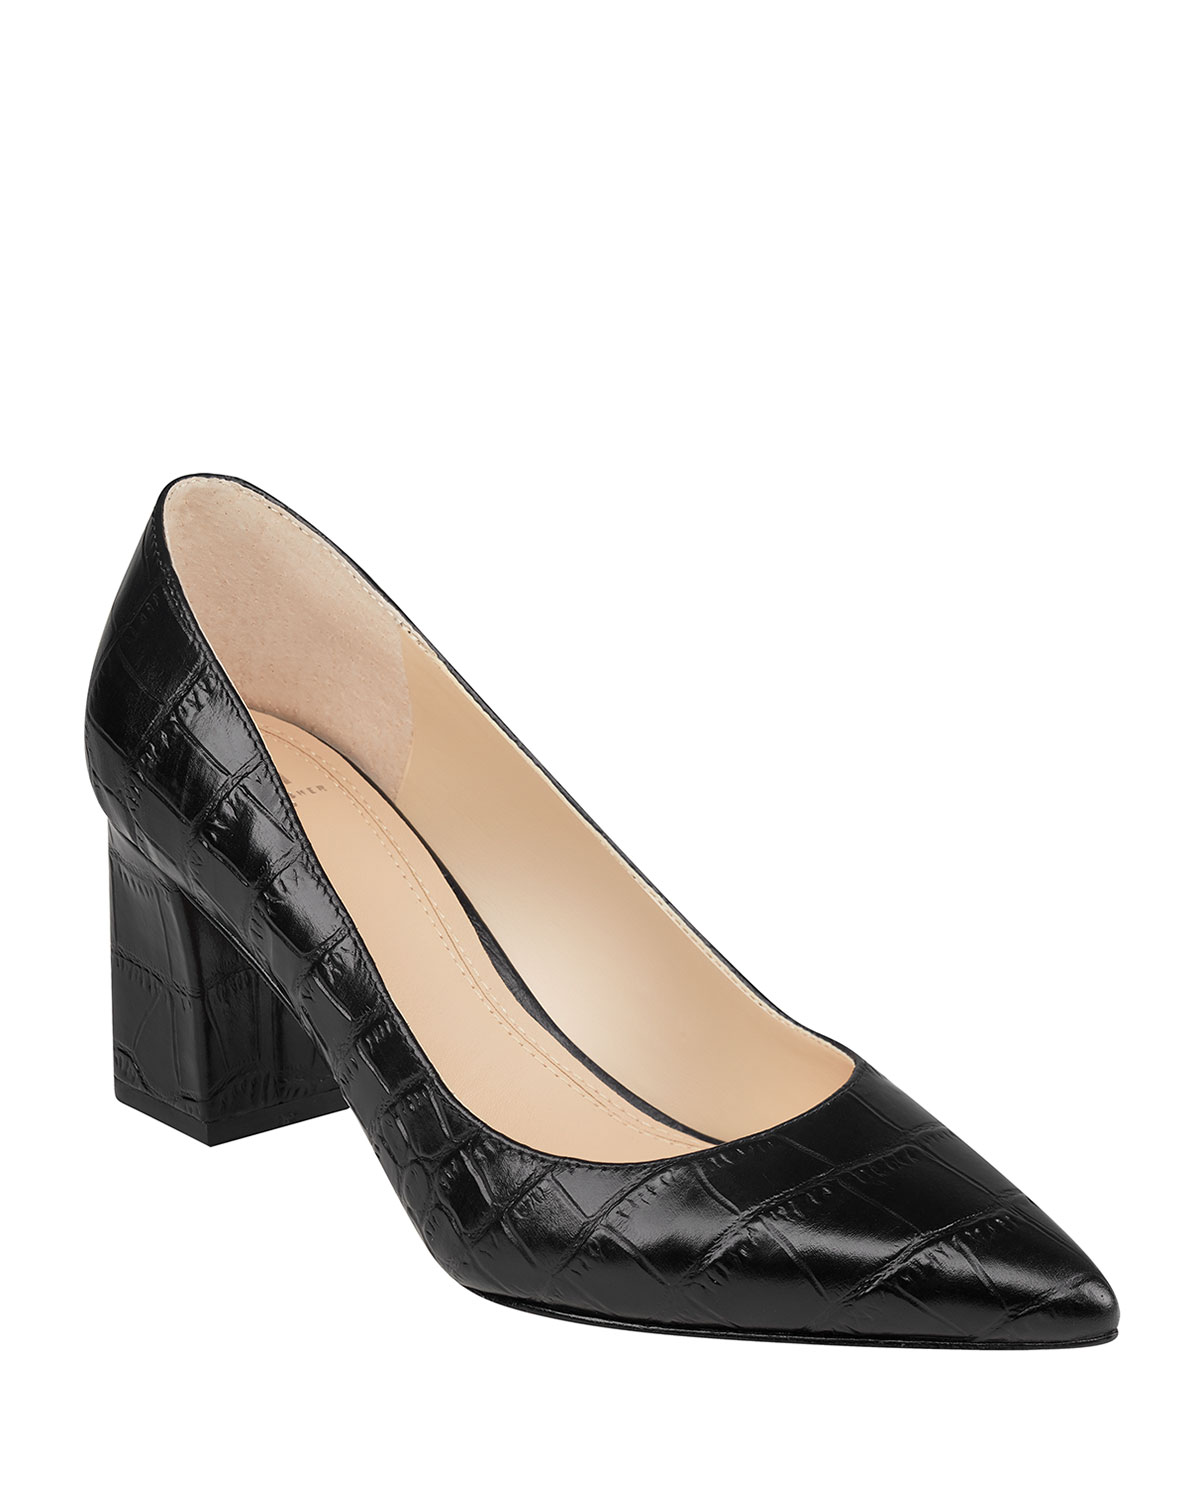 Zala Crocodile-Embossed Pumps